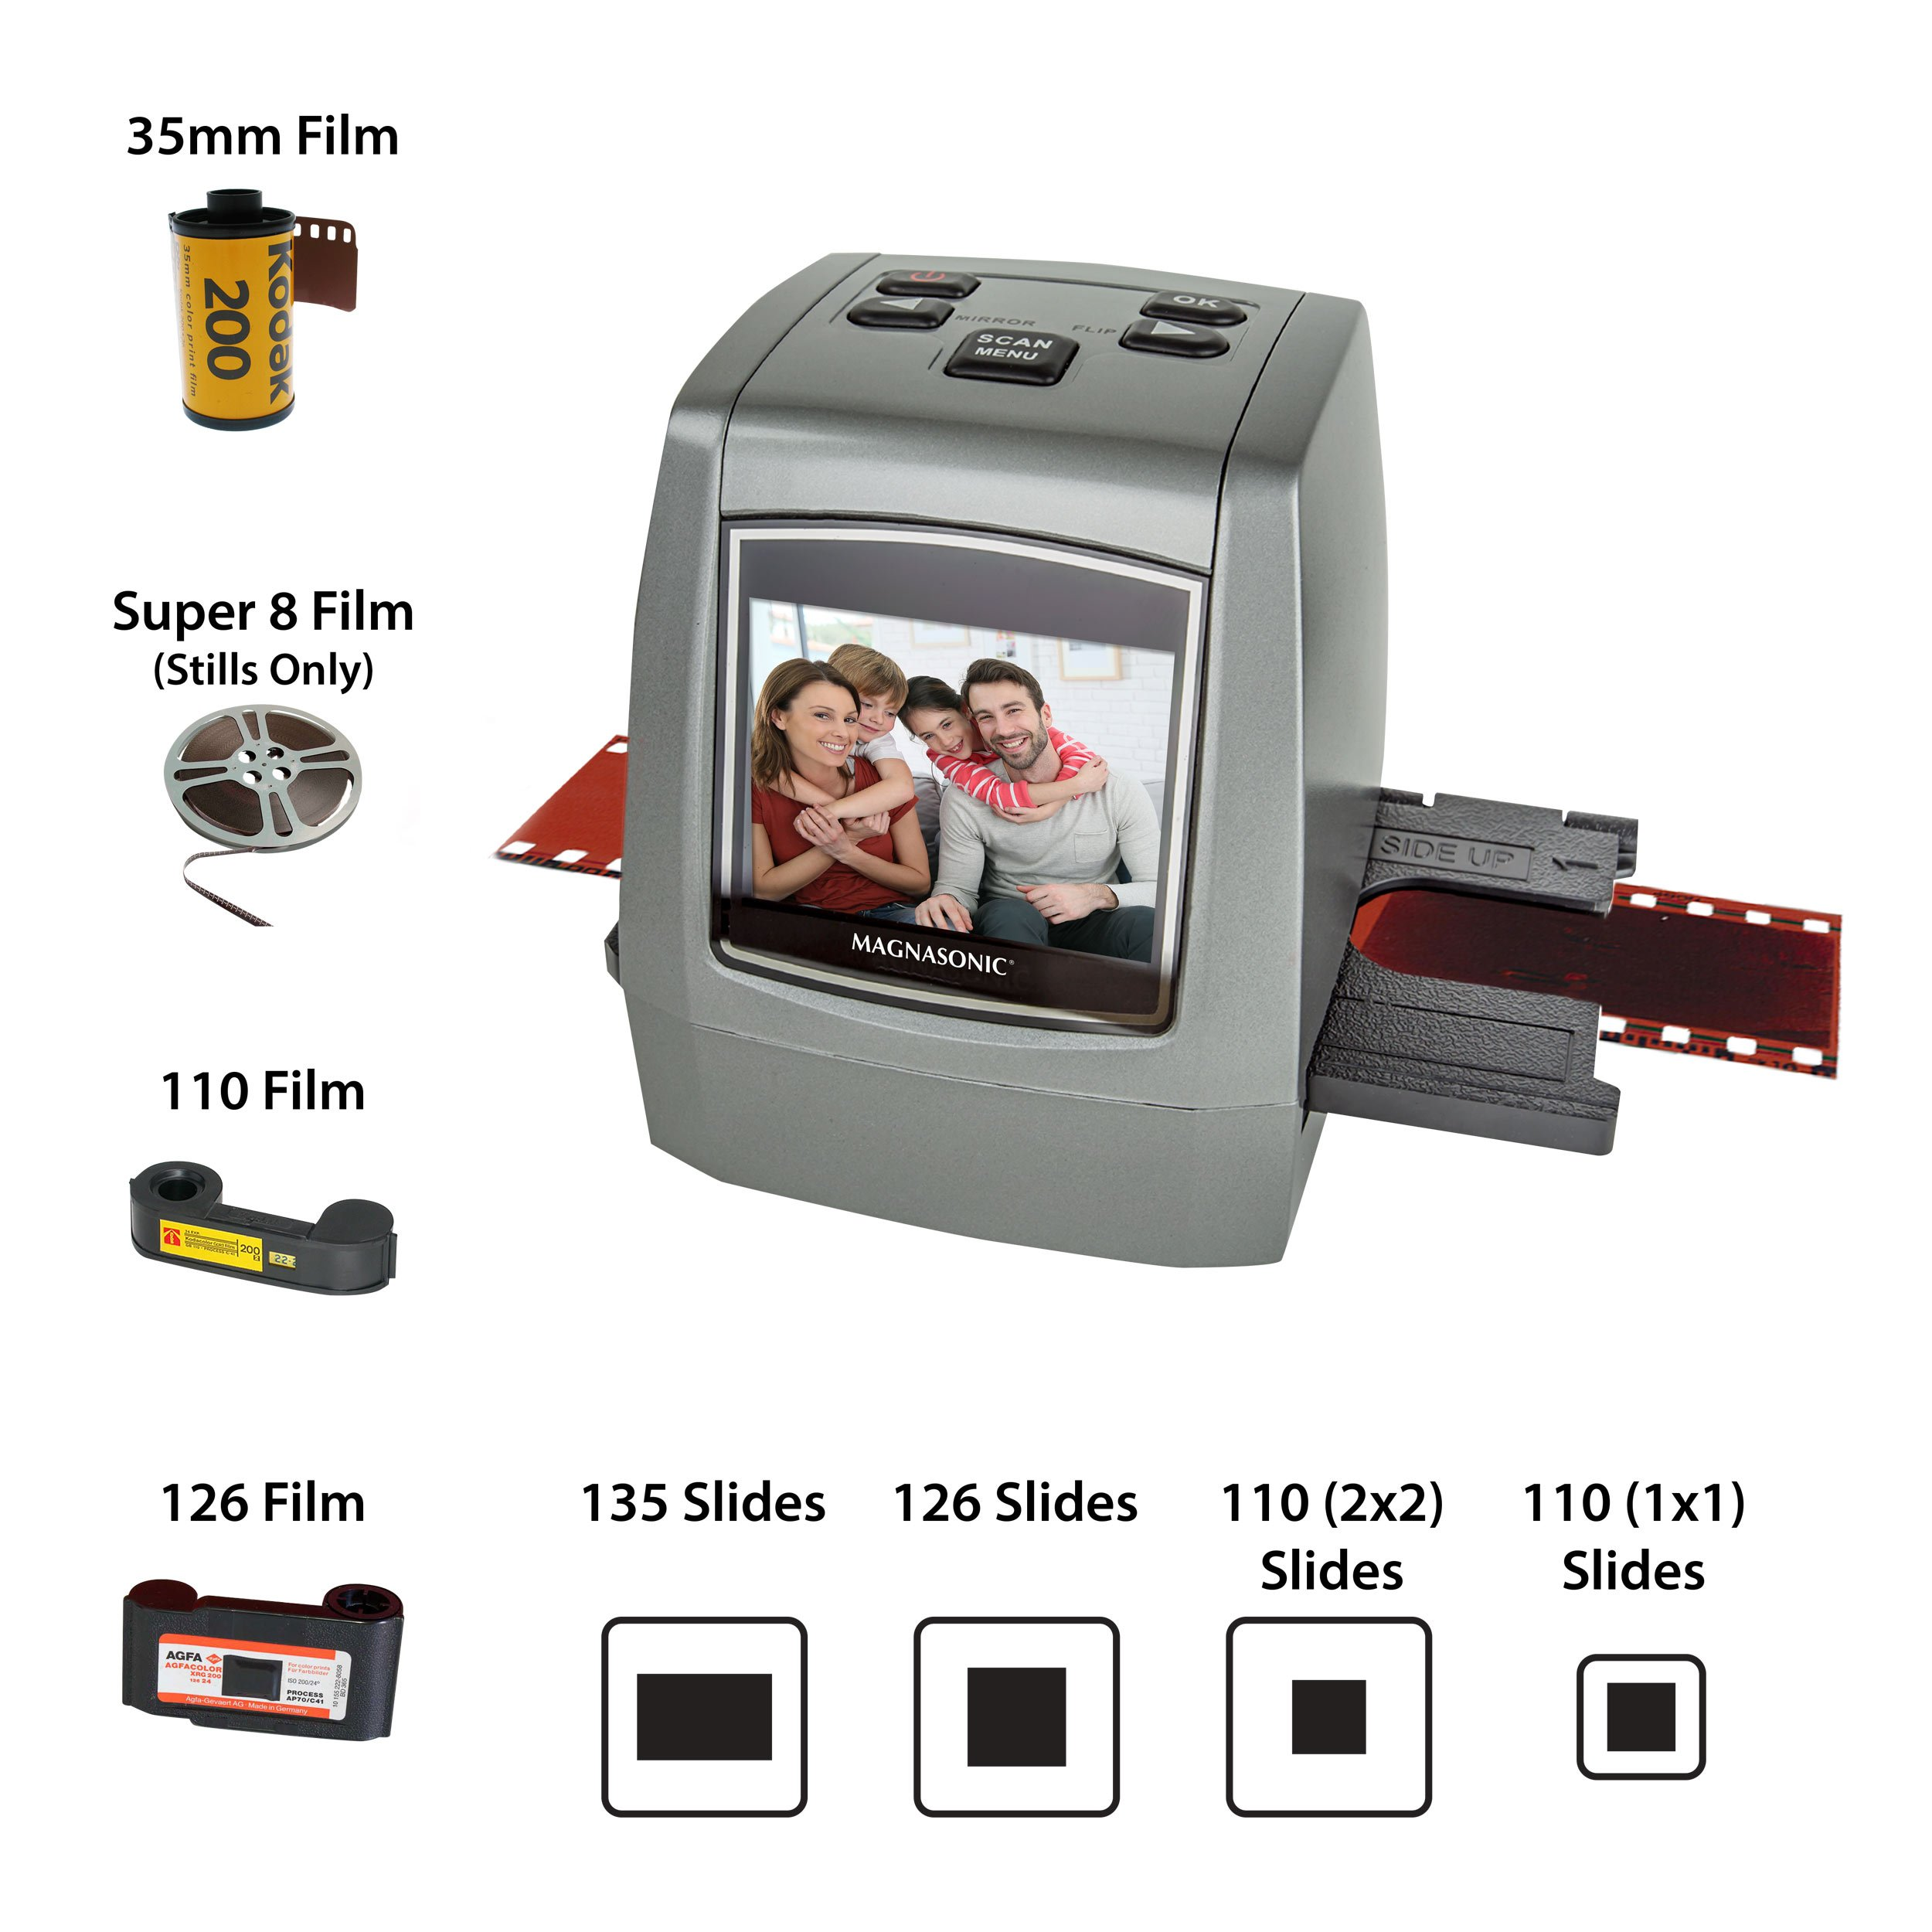 Magnasonic All-in-One High Resolution 22MP Film Scanner, Converts 35mm/126KPK/110/Super 8 Films, Slides, Negatives into Digital Photos, Vibrant 2.4'' LCD Screen, Impressive 128MB Built-in Memory by Magnasonic